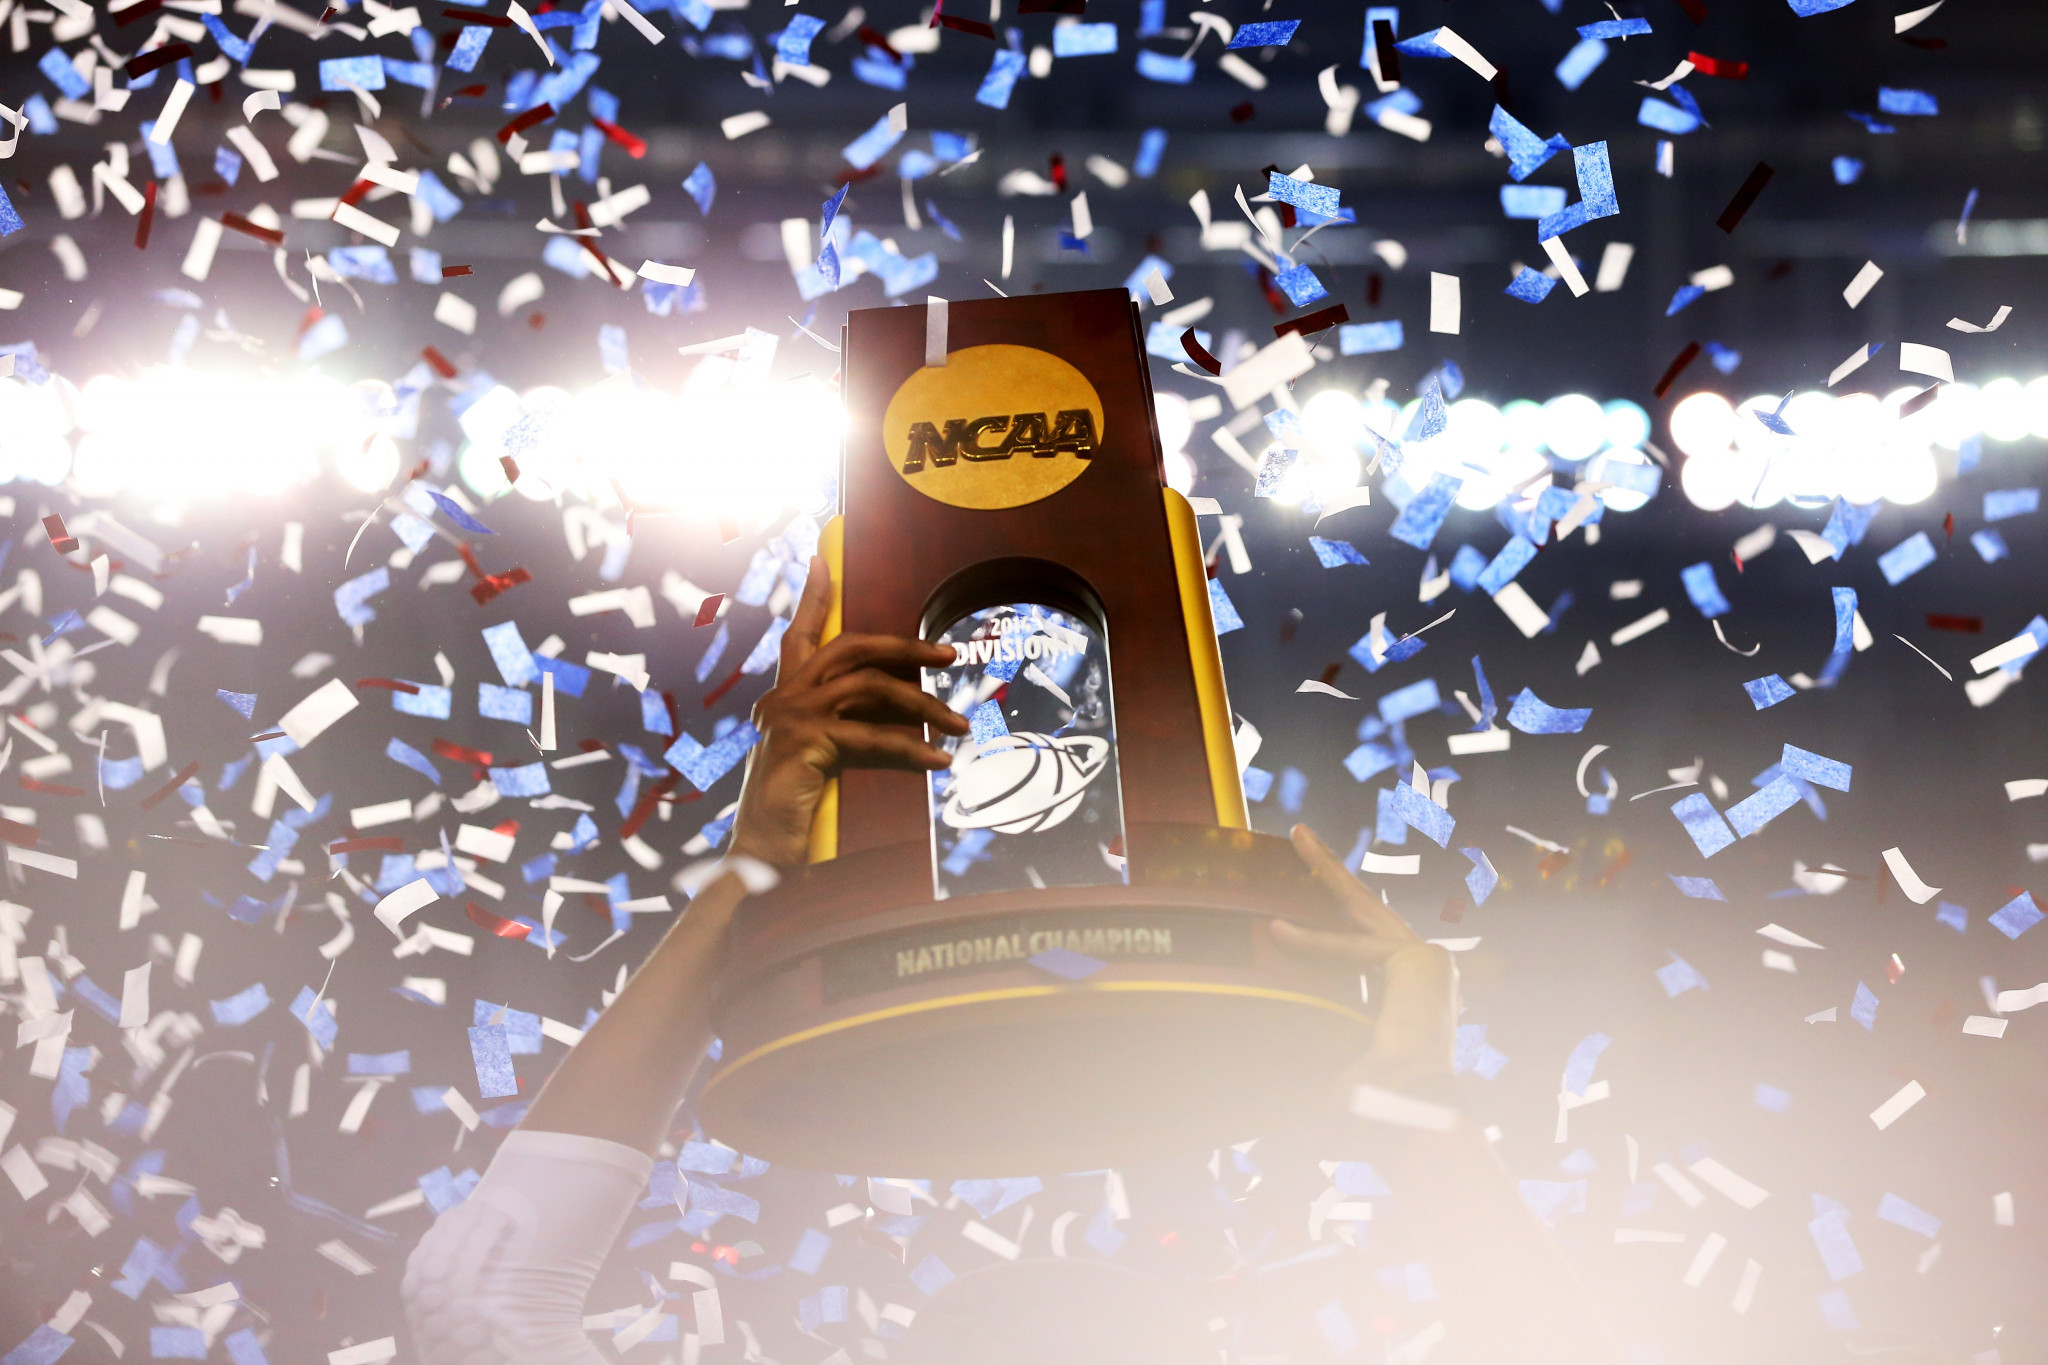 NCAA planning to hold whole March Madness basketball tournament in Indianapolis